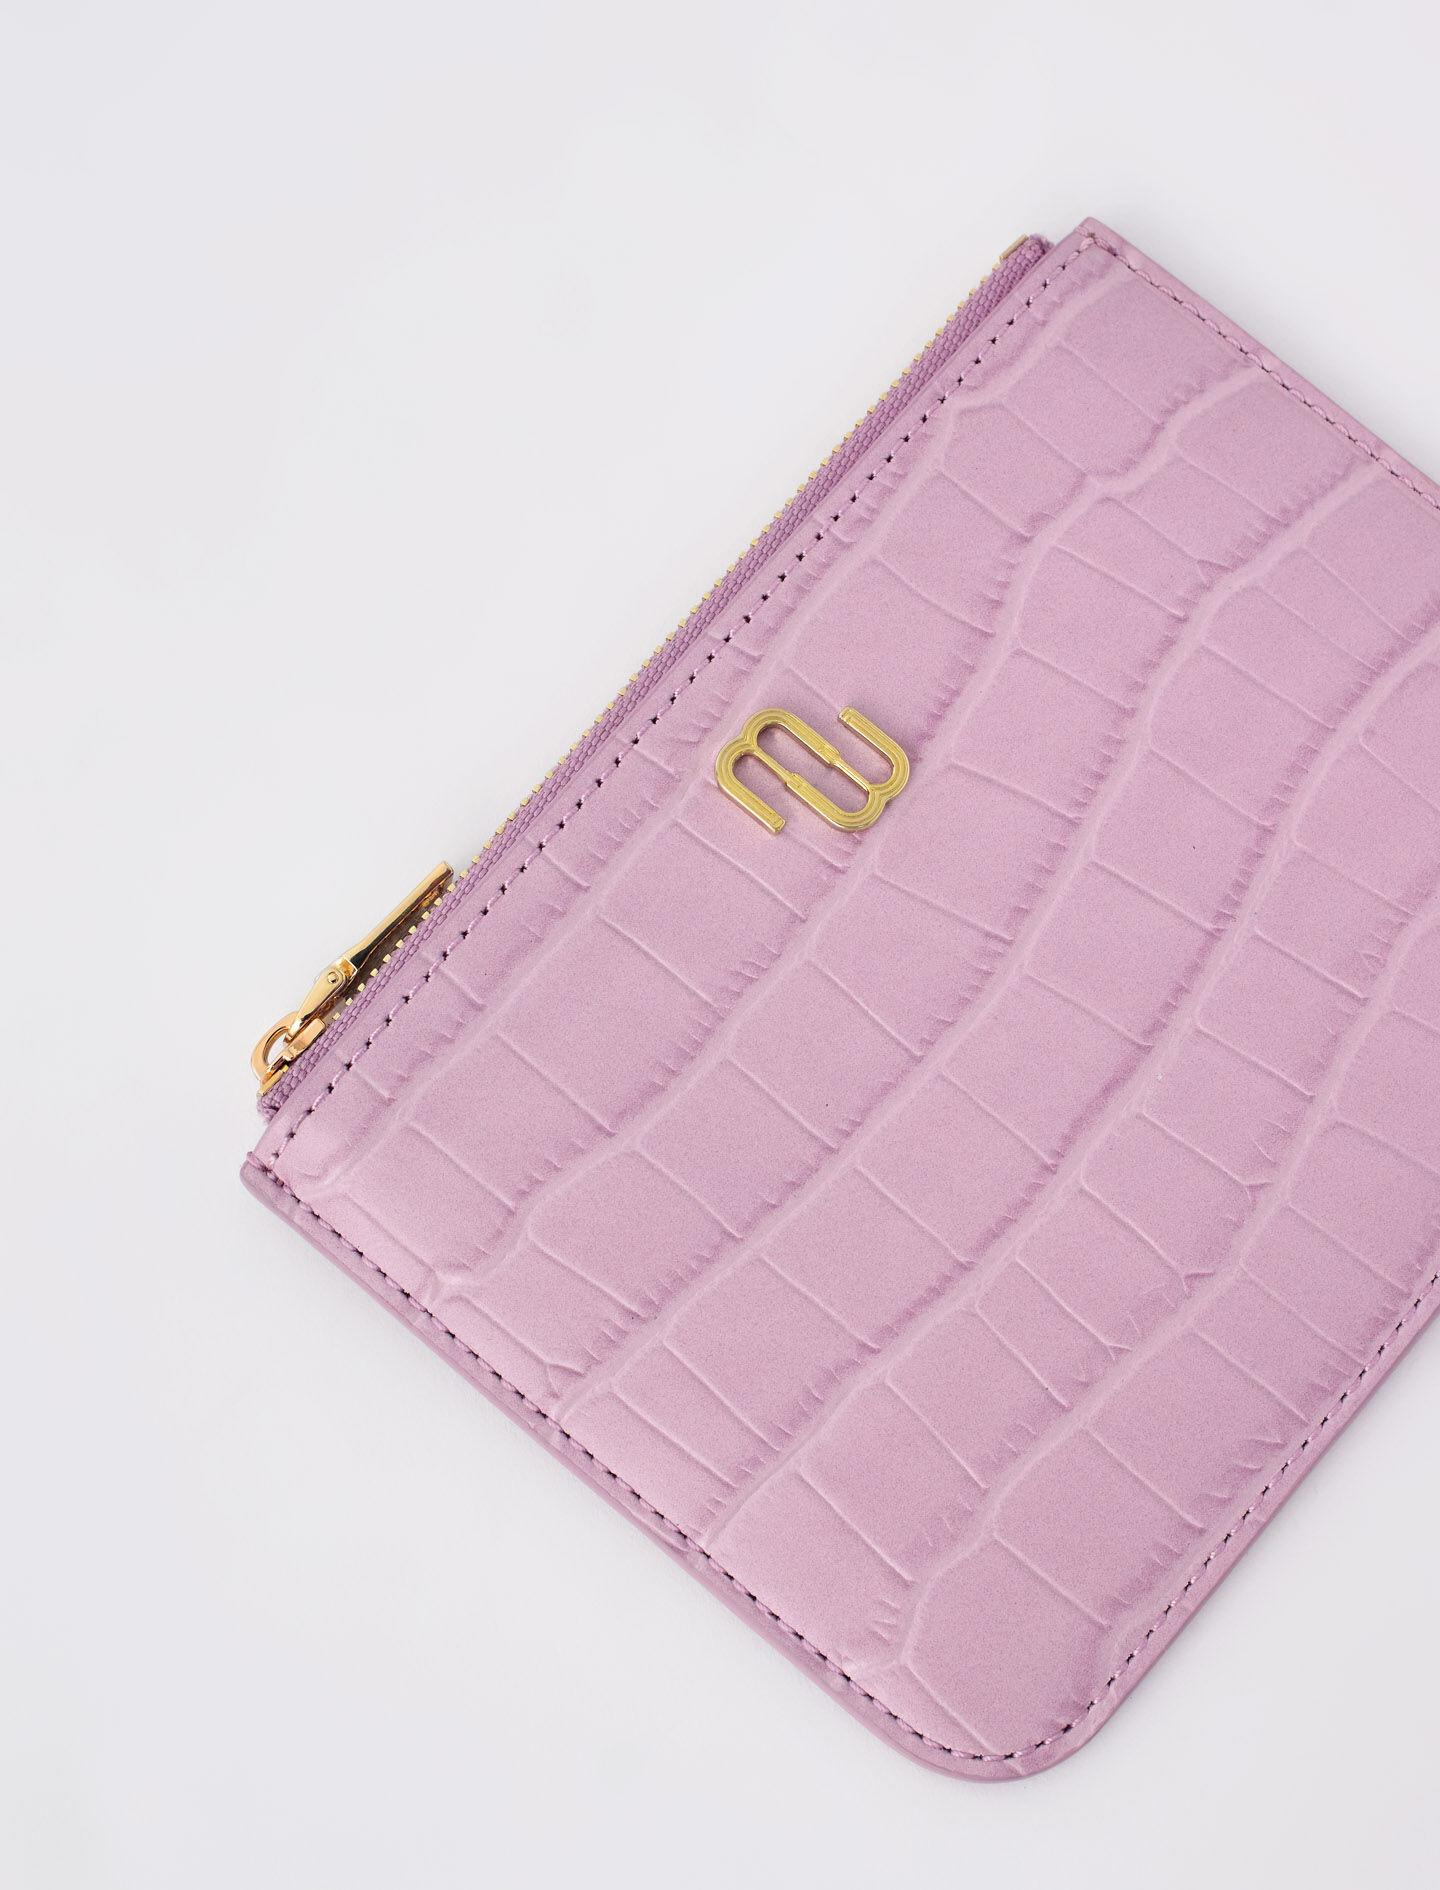 ZIP-UP EMBOSSED LEATHER POUCH 2